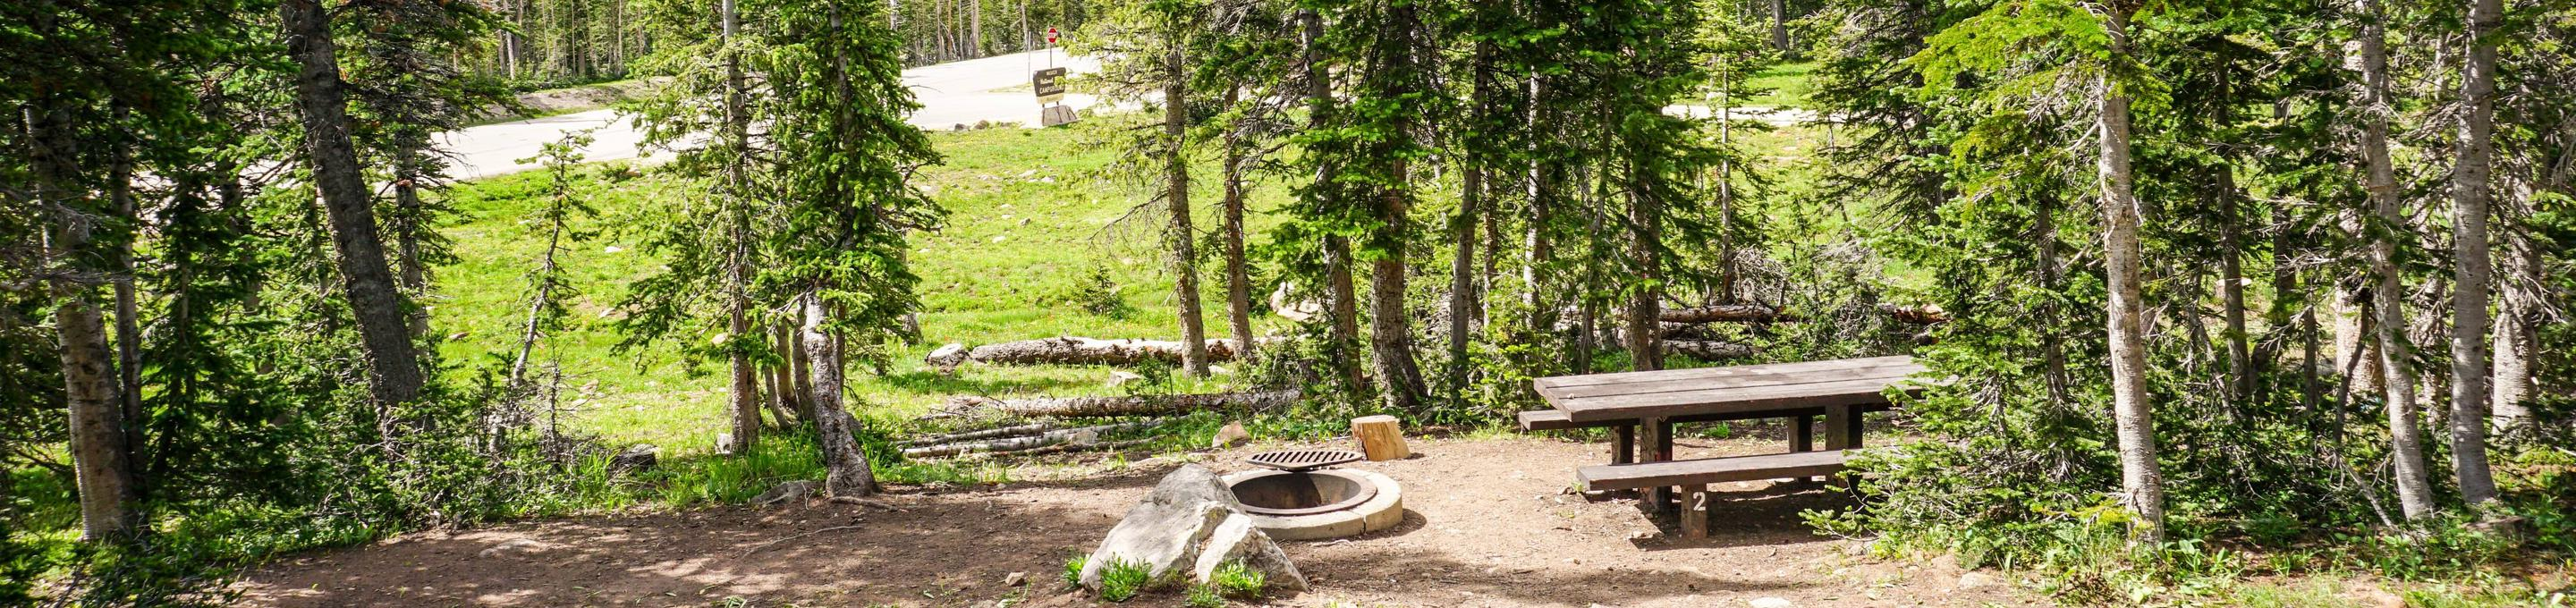 Moosehorn Campground - 002